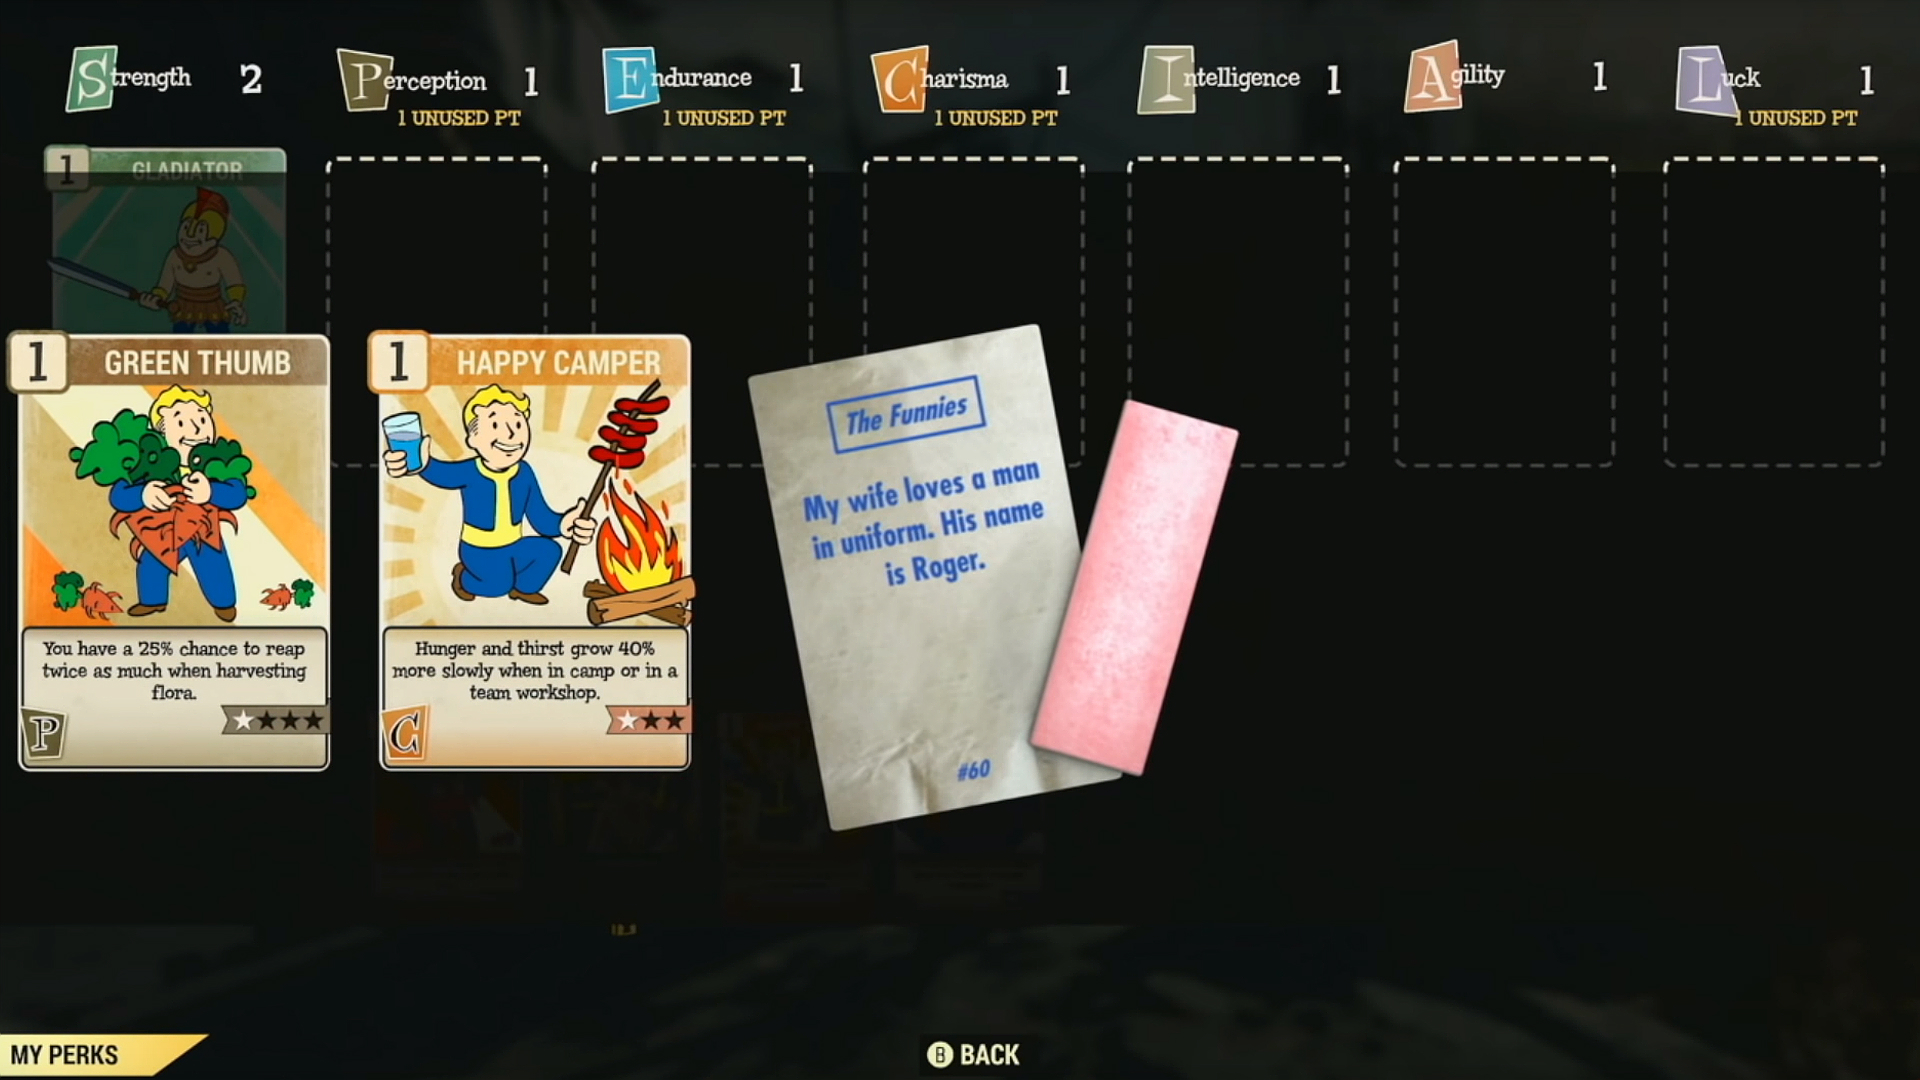 Fallout 76 Karte Deutsch.Fallout 76 Perk Cards All Cards Revealed So Far And New